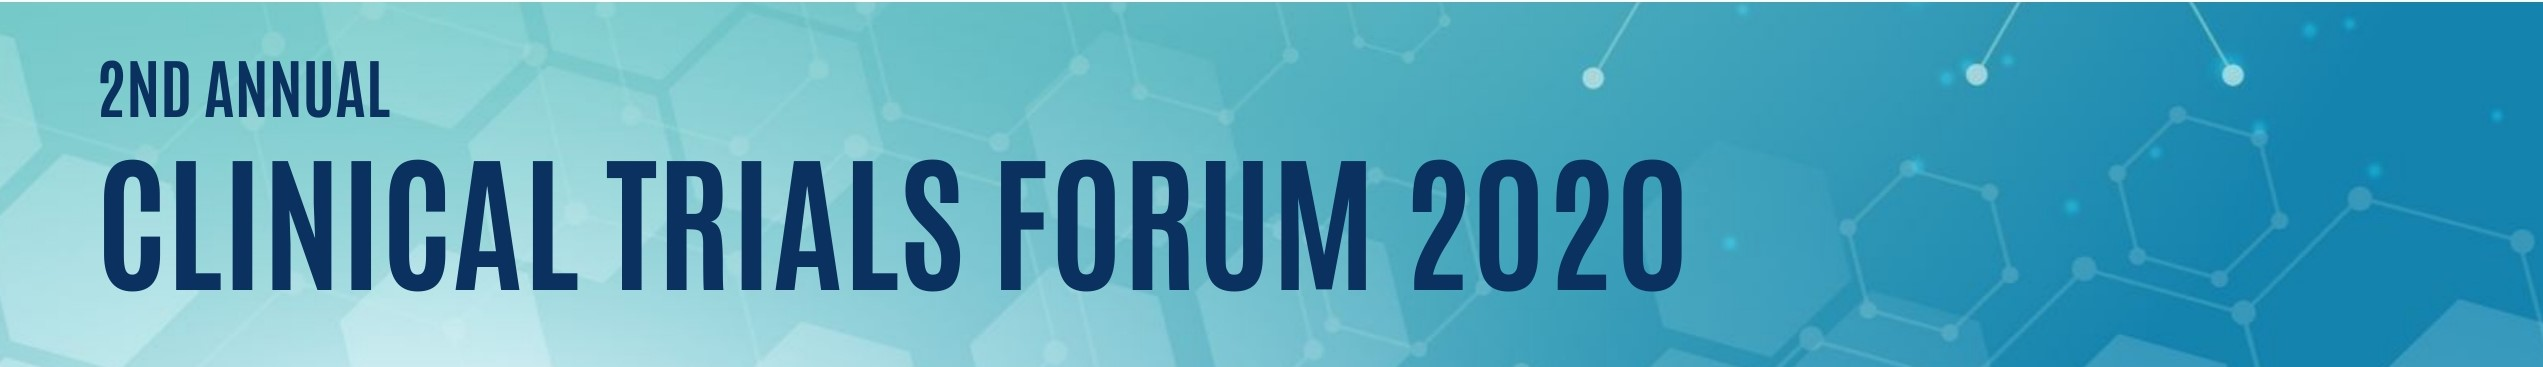 Clinical Trials Forum 2020 banner